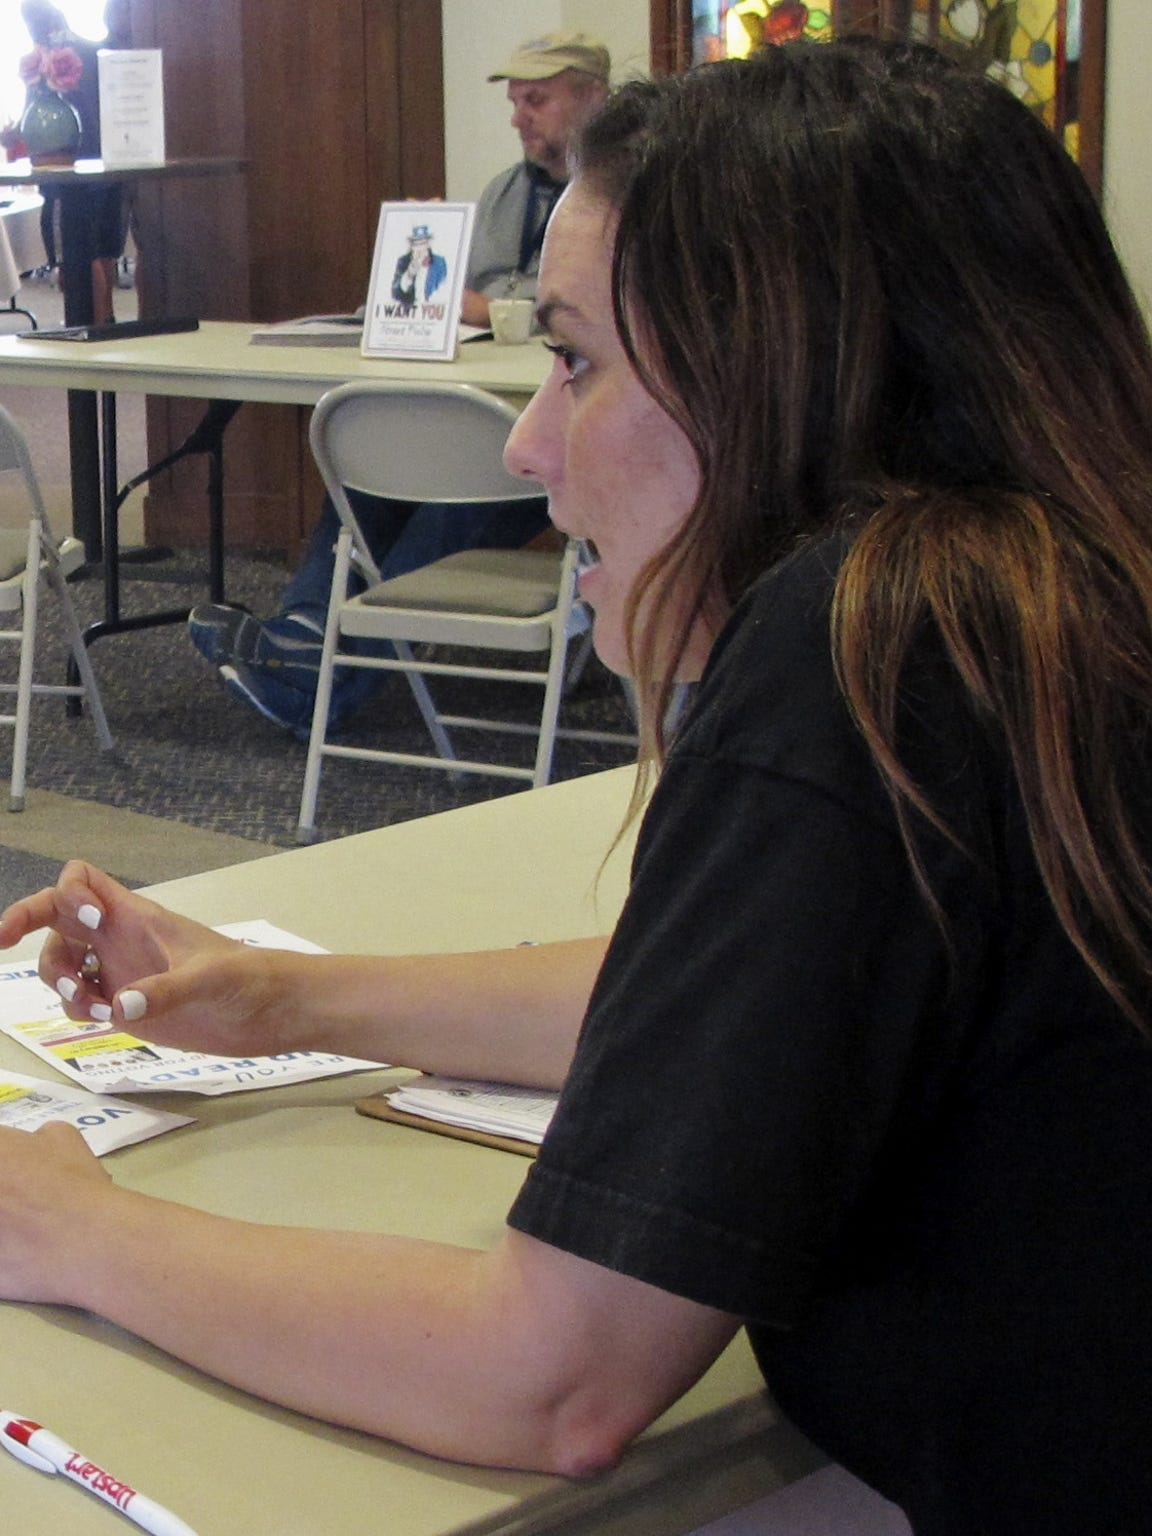 Molly McGrath, who works for VoteRiders helping people